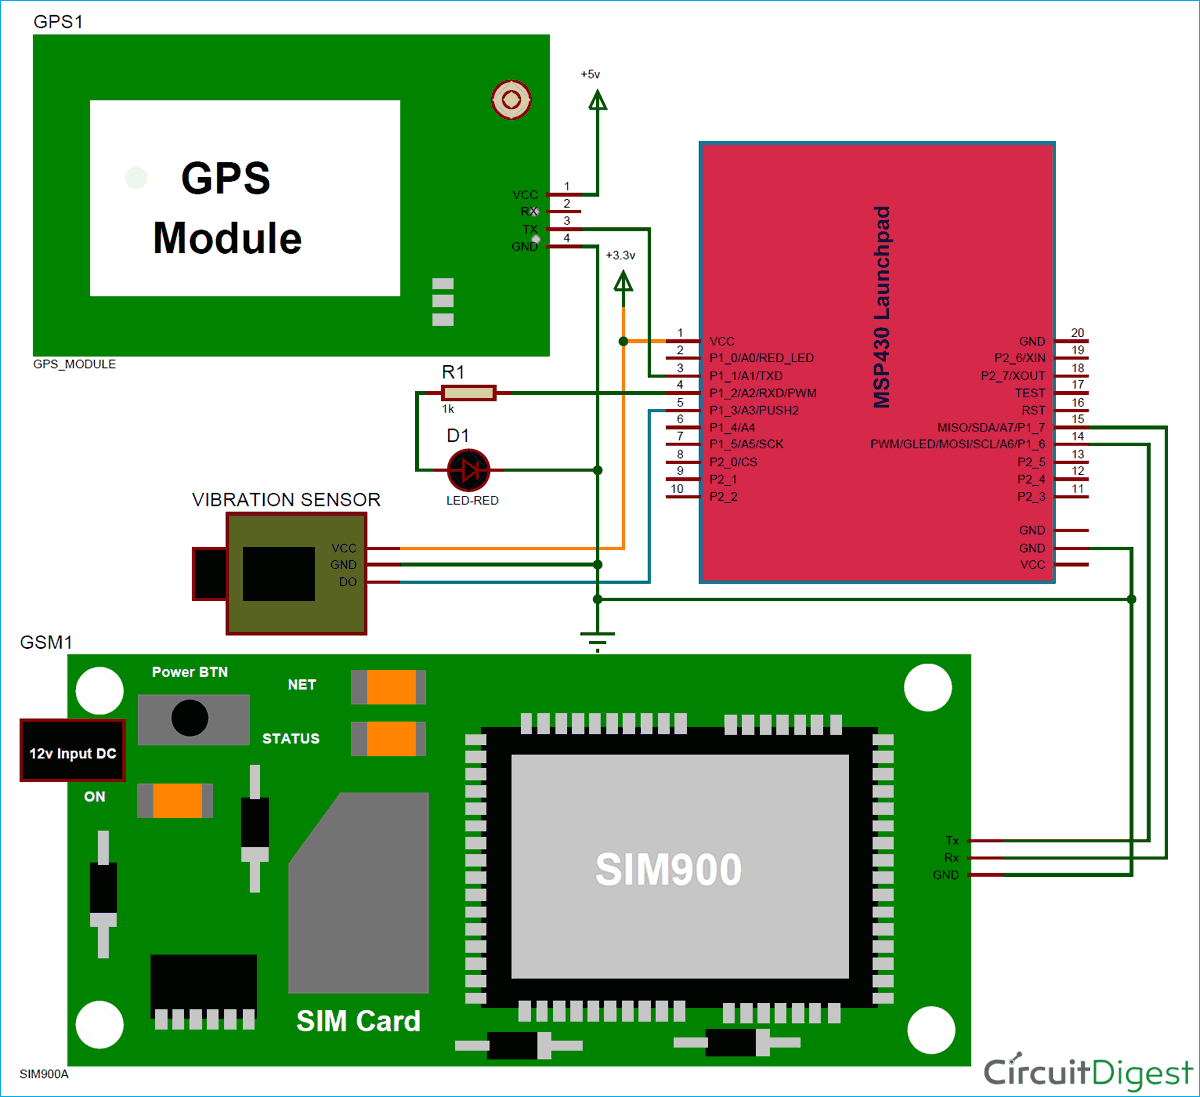 hight resolution of circuit diagram for vehicle tracking and accident alert system using msp430and gps